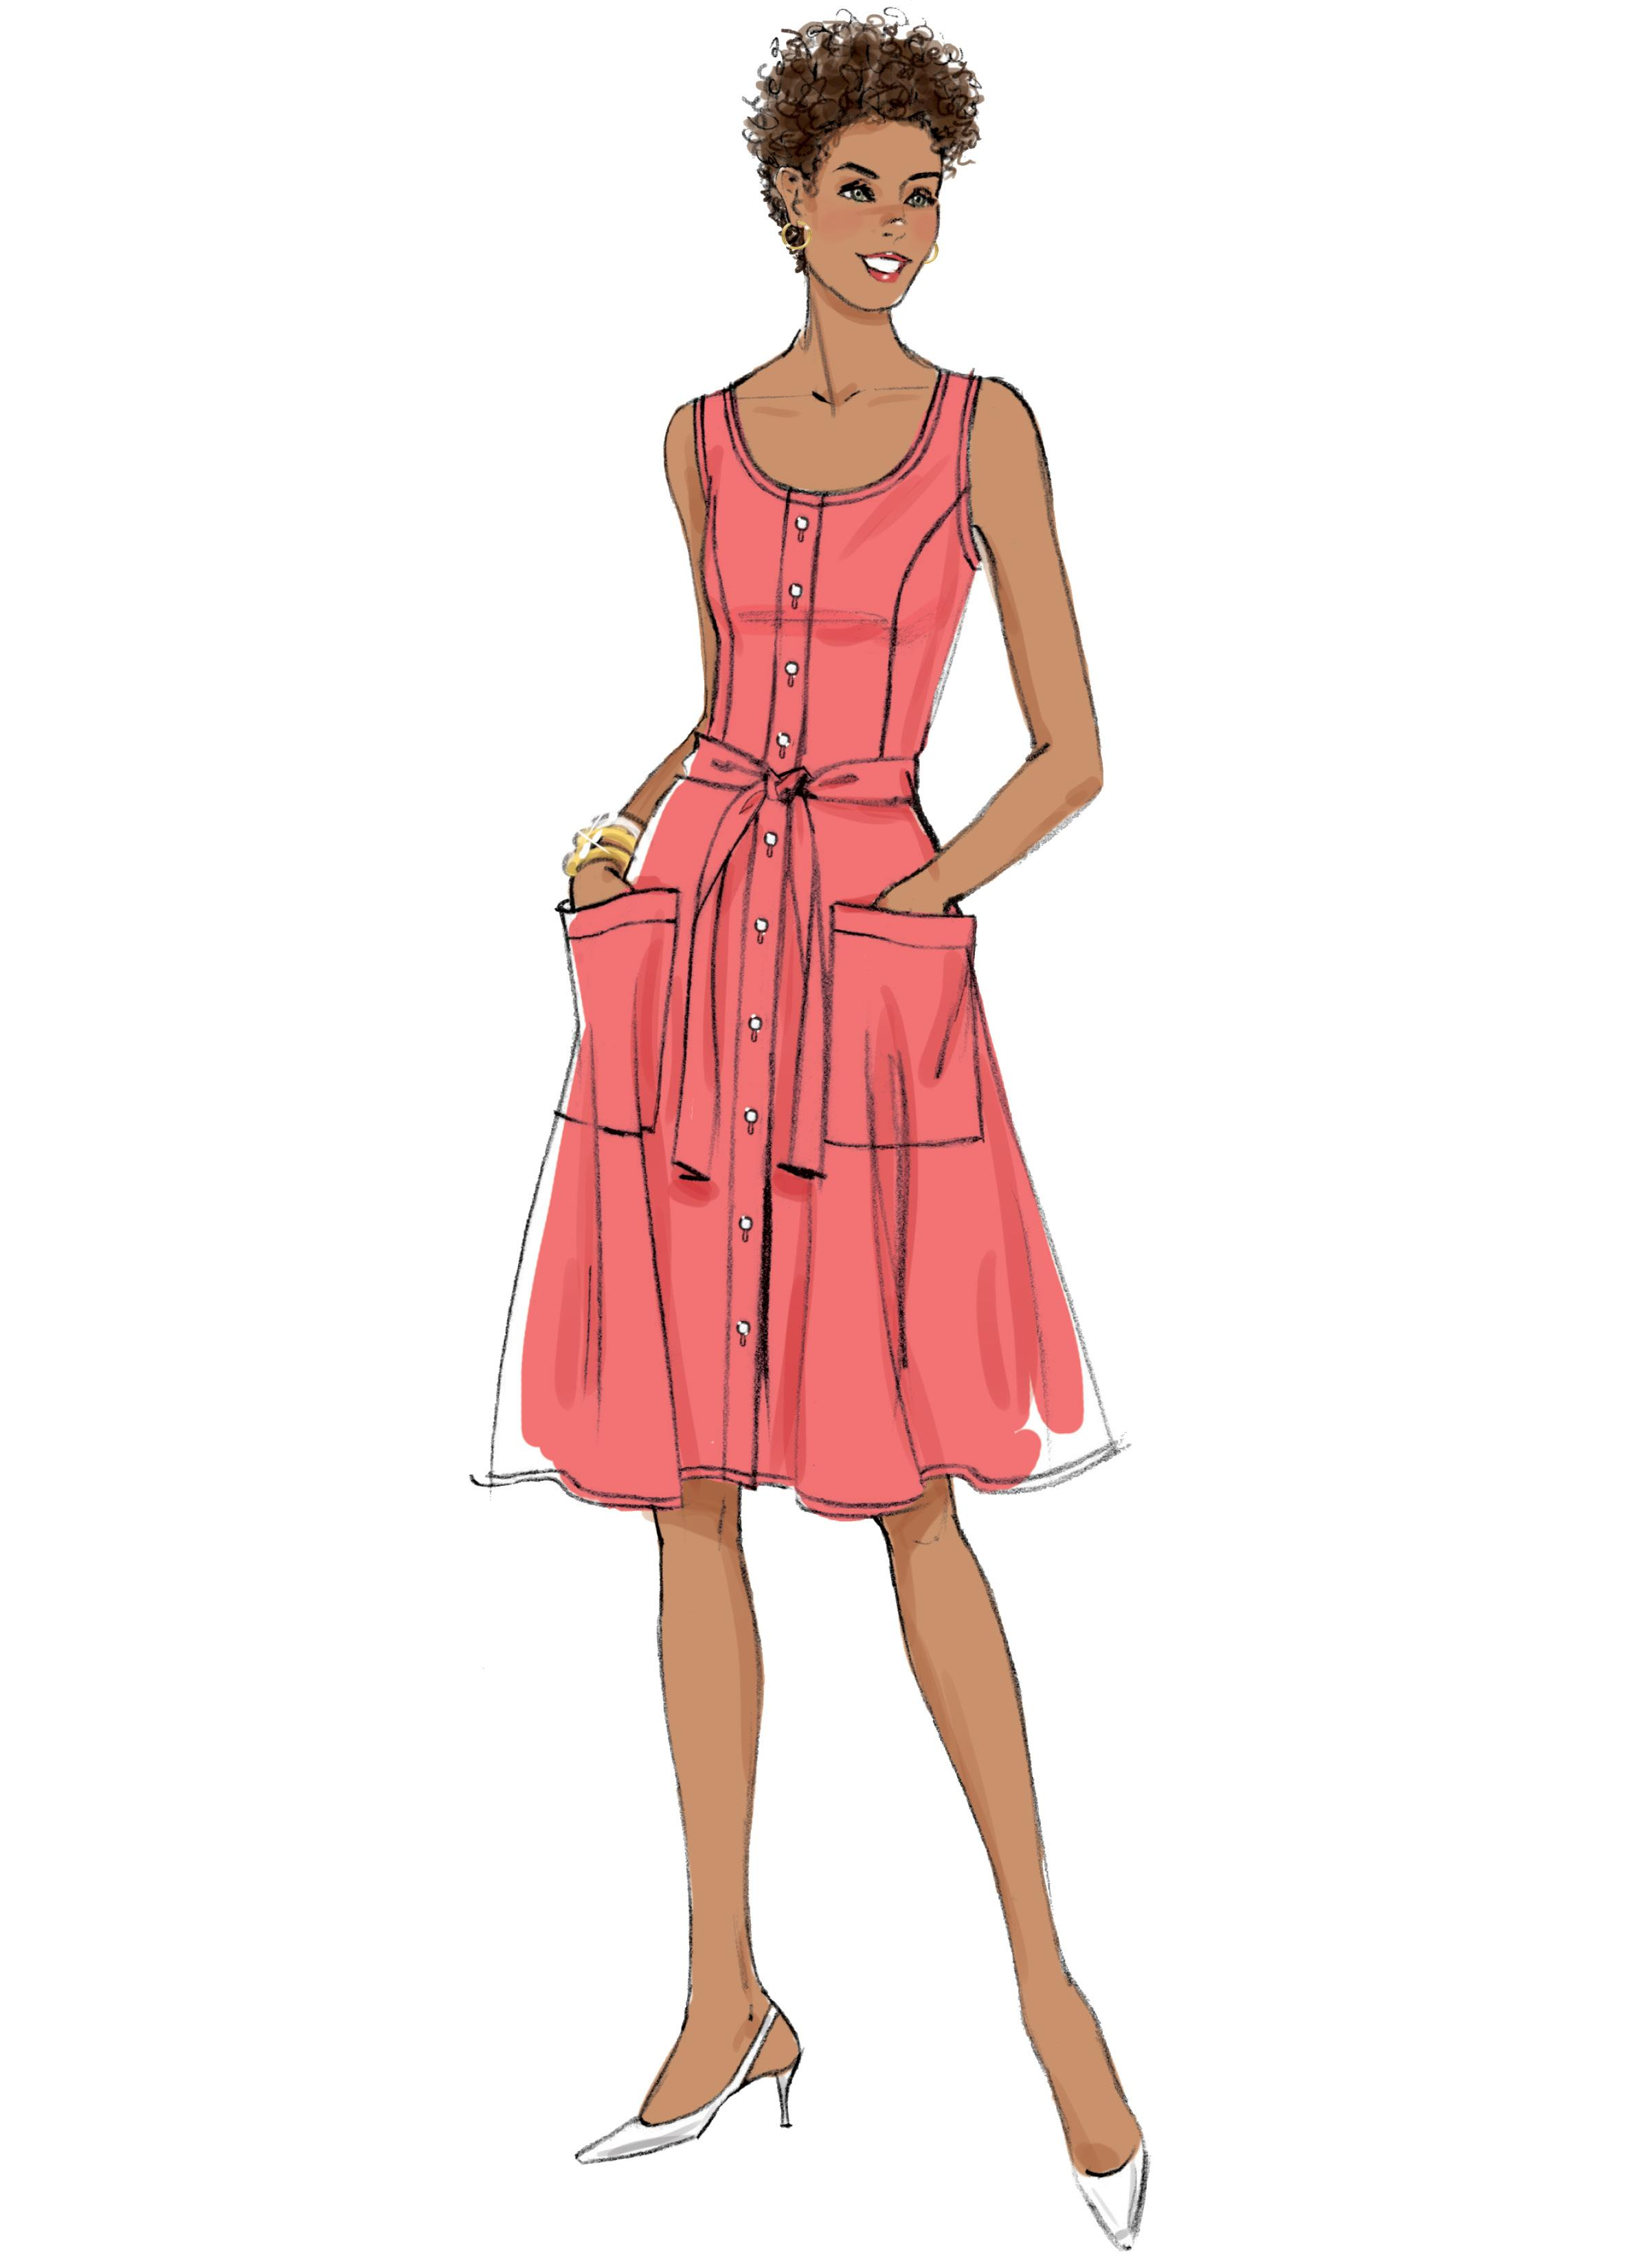 Butterick B6674 Misses' Dress, Sash and Bag